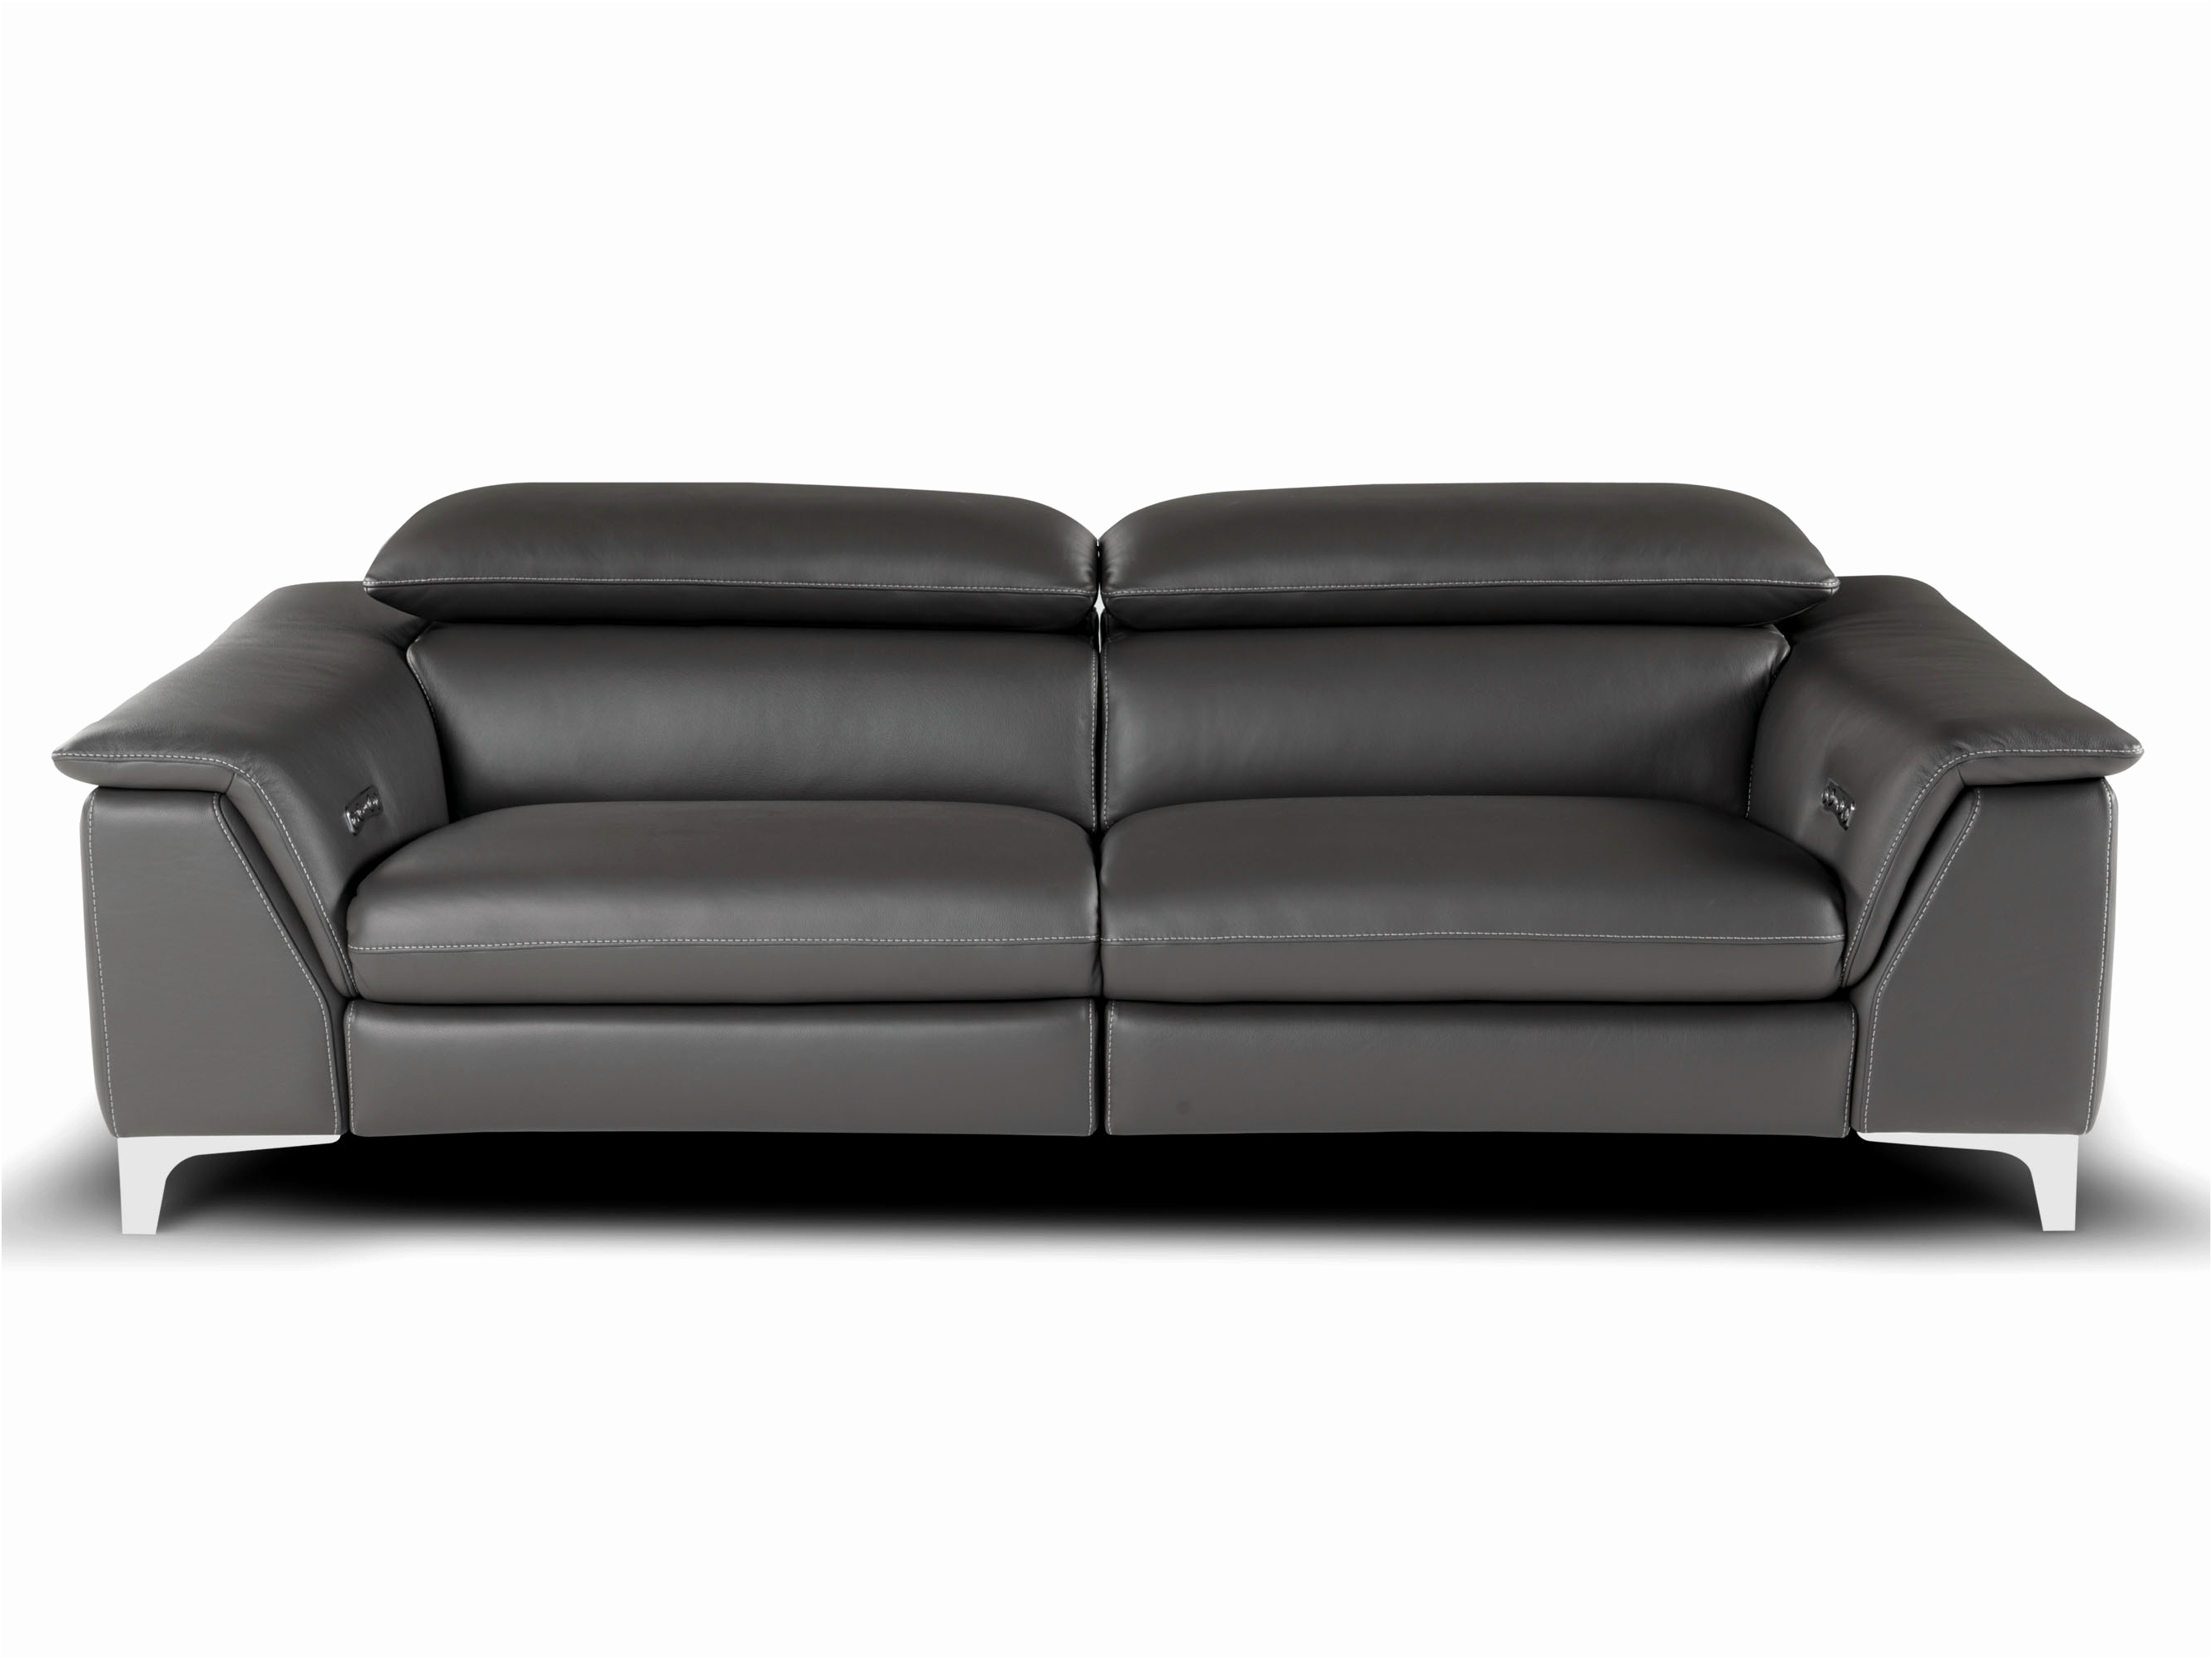 Widely Used Berkline Sofas For Unique Berkline Leather Sofa Elegant – Intuisiblog (View 19 of 20)